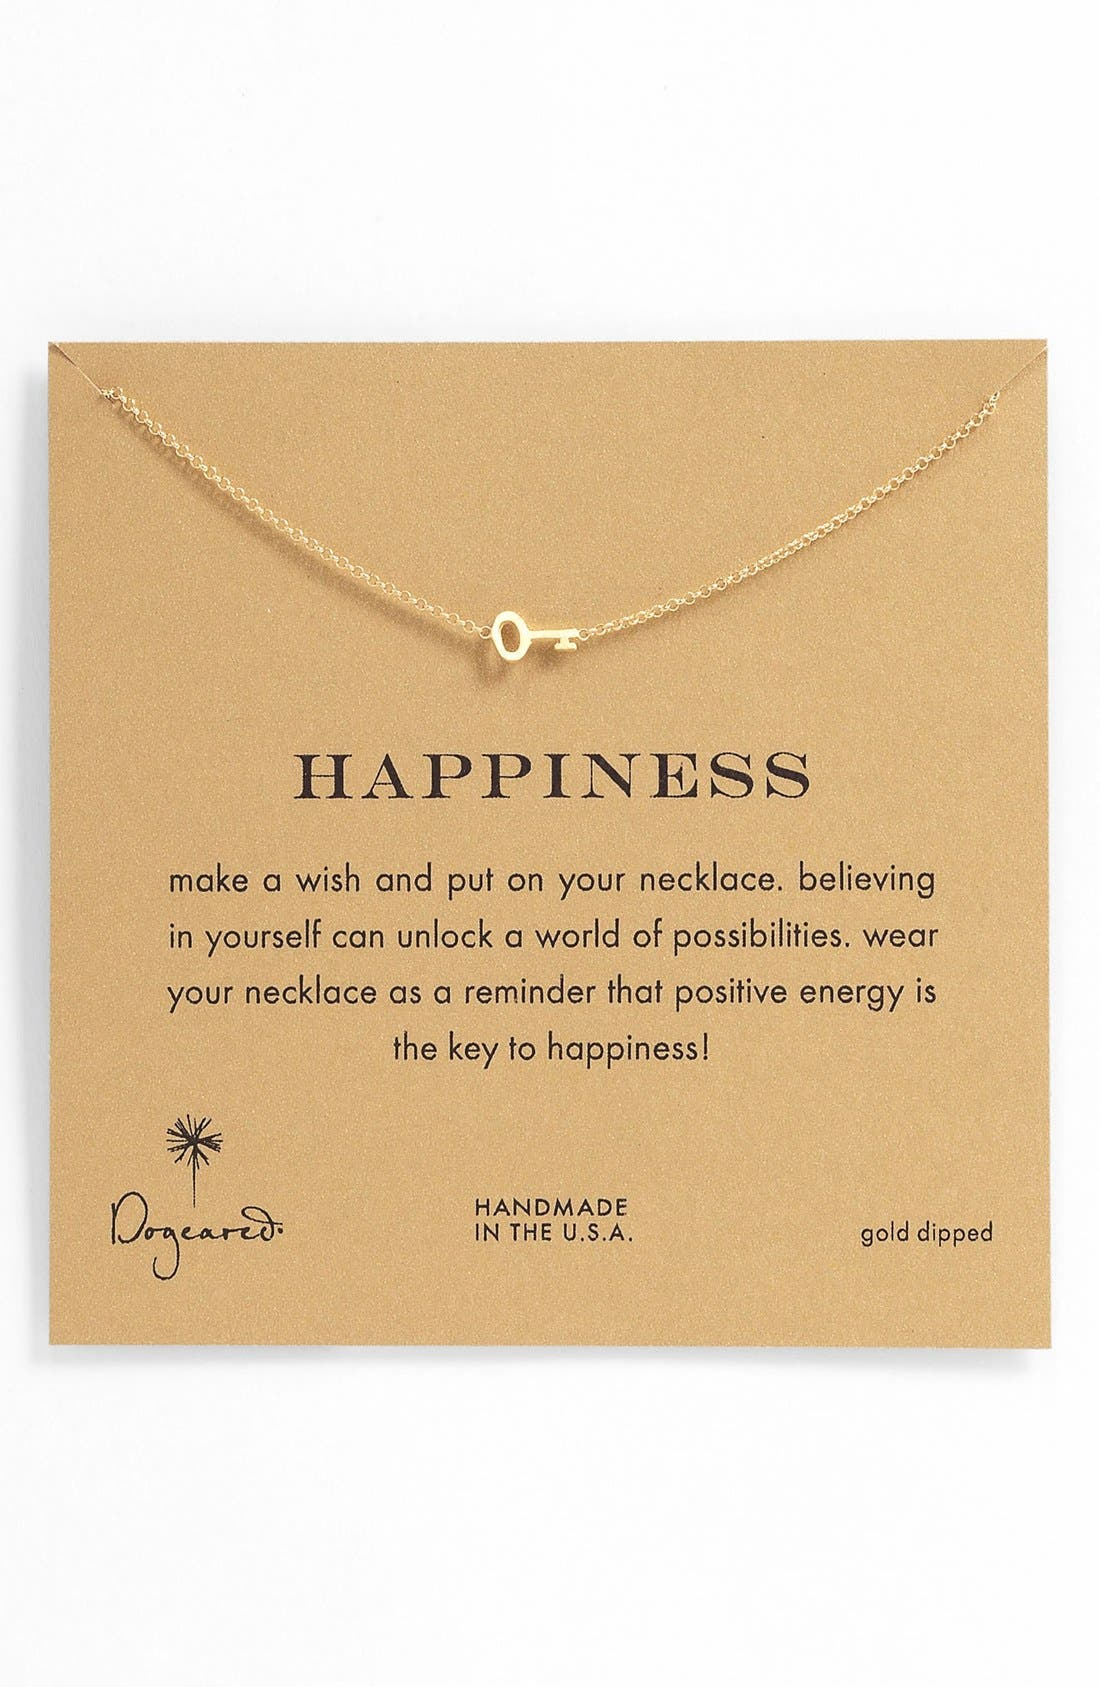 Alternate Image 1 Selected - Dogeared 'Whispers - Happiness' Boxed Pendant Necklace